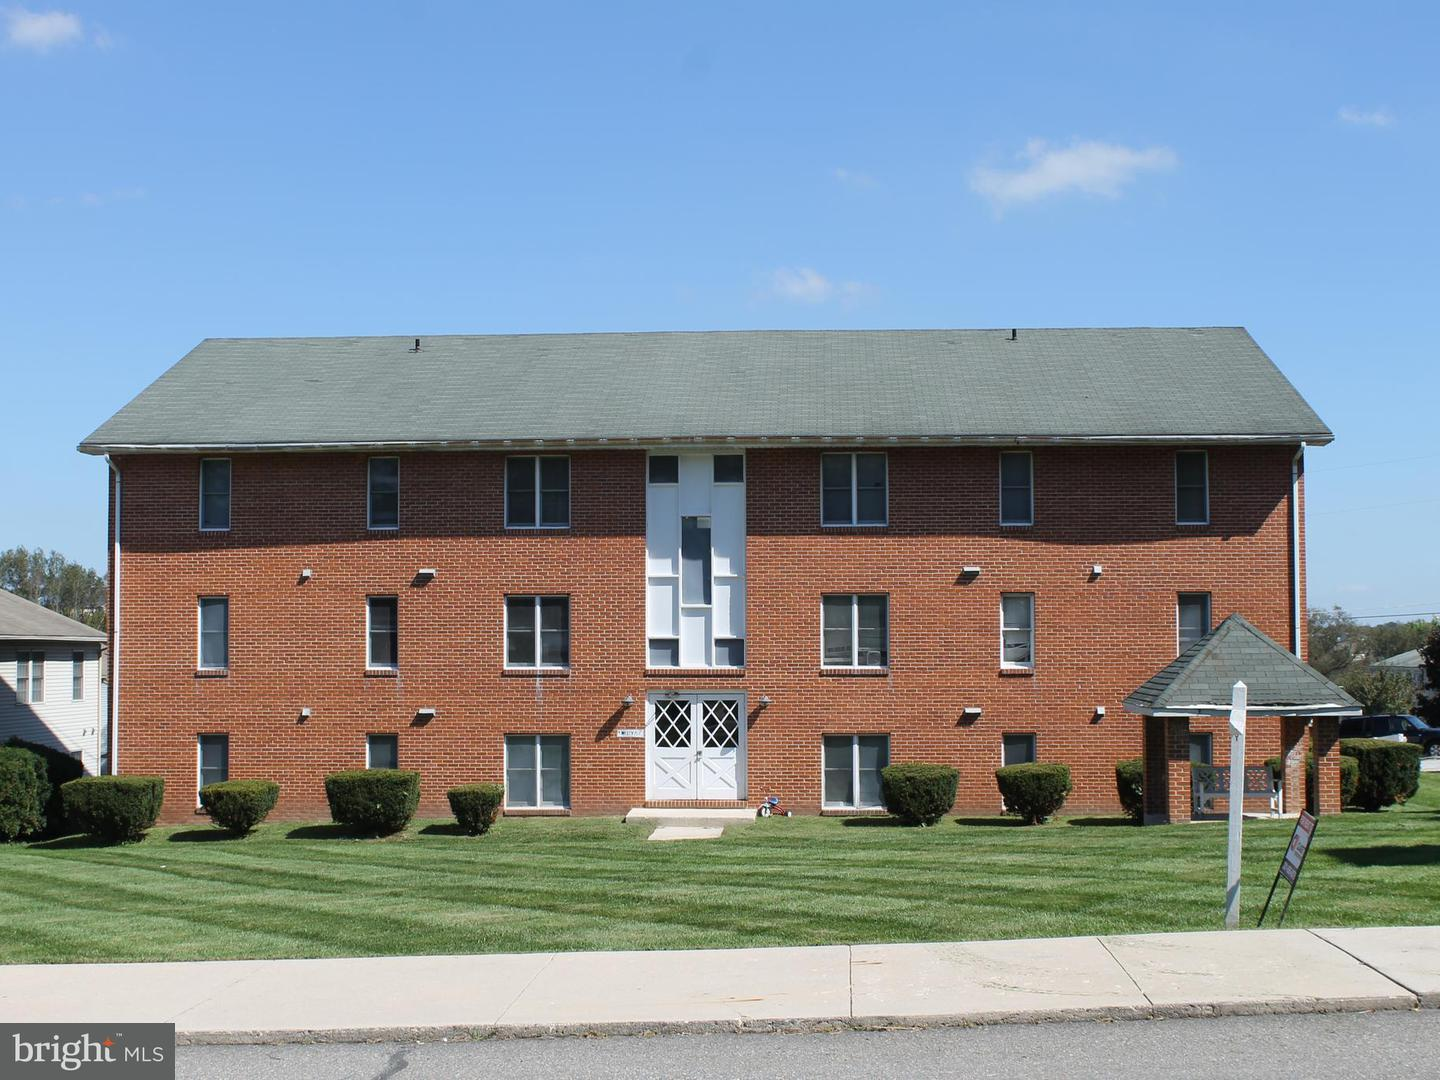 Other Residential for Rent at 1 Welty Ave #304 Emmitsburg, Maryland 21727 United States